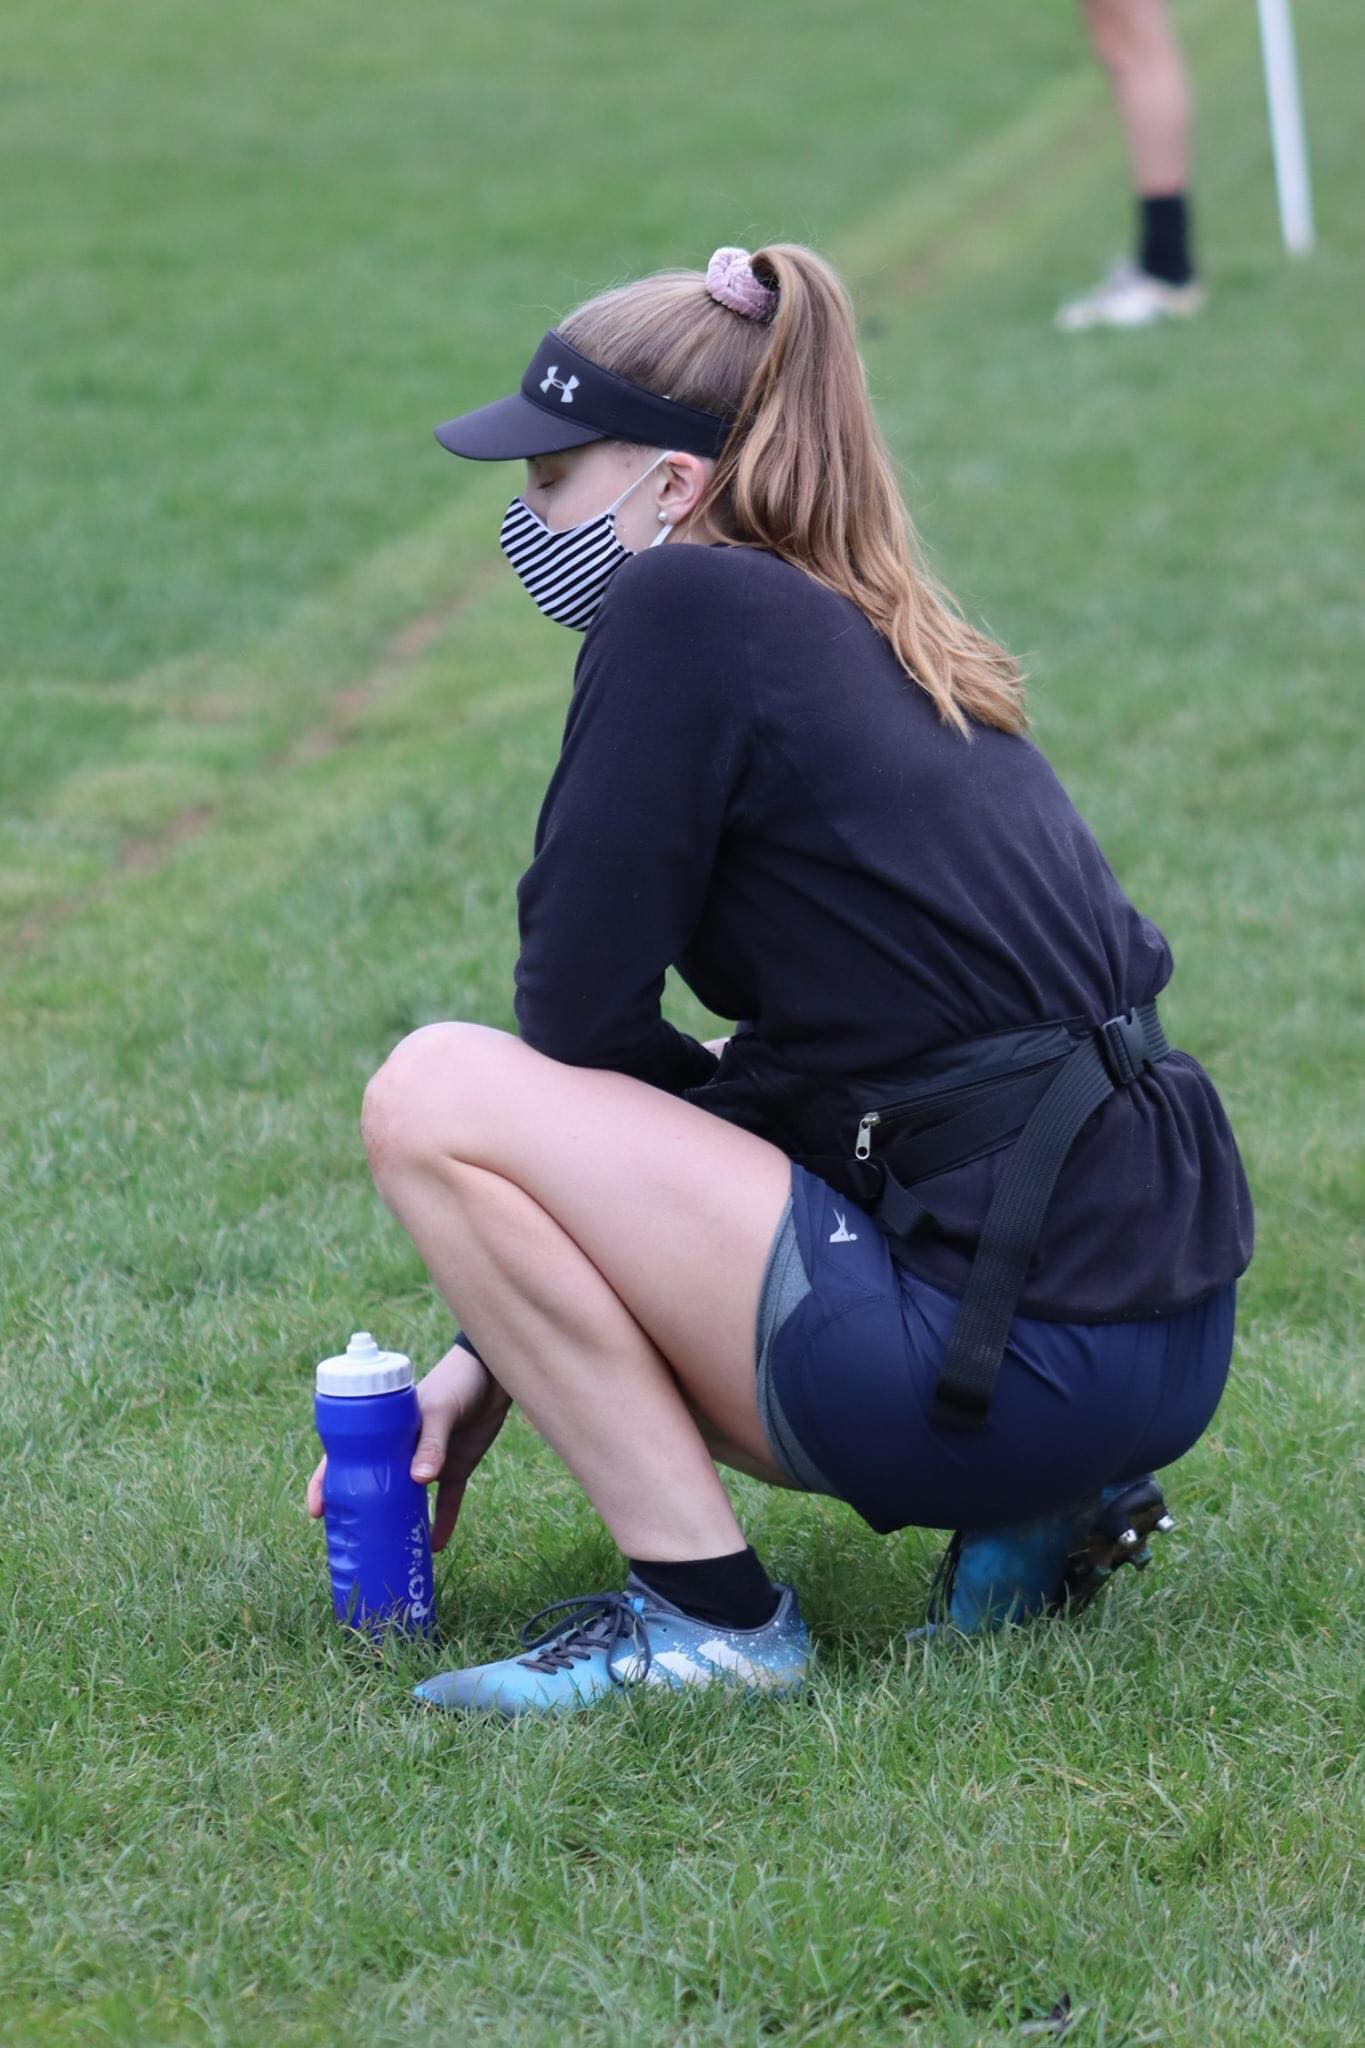 Bronwyn on the sideline